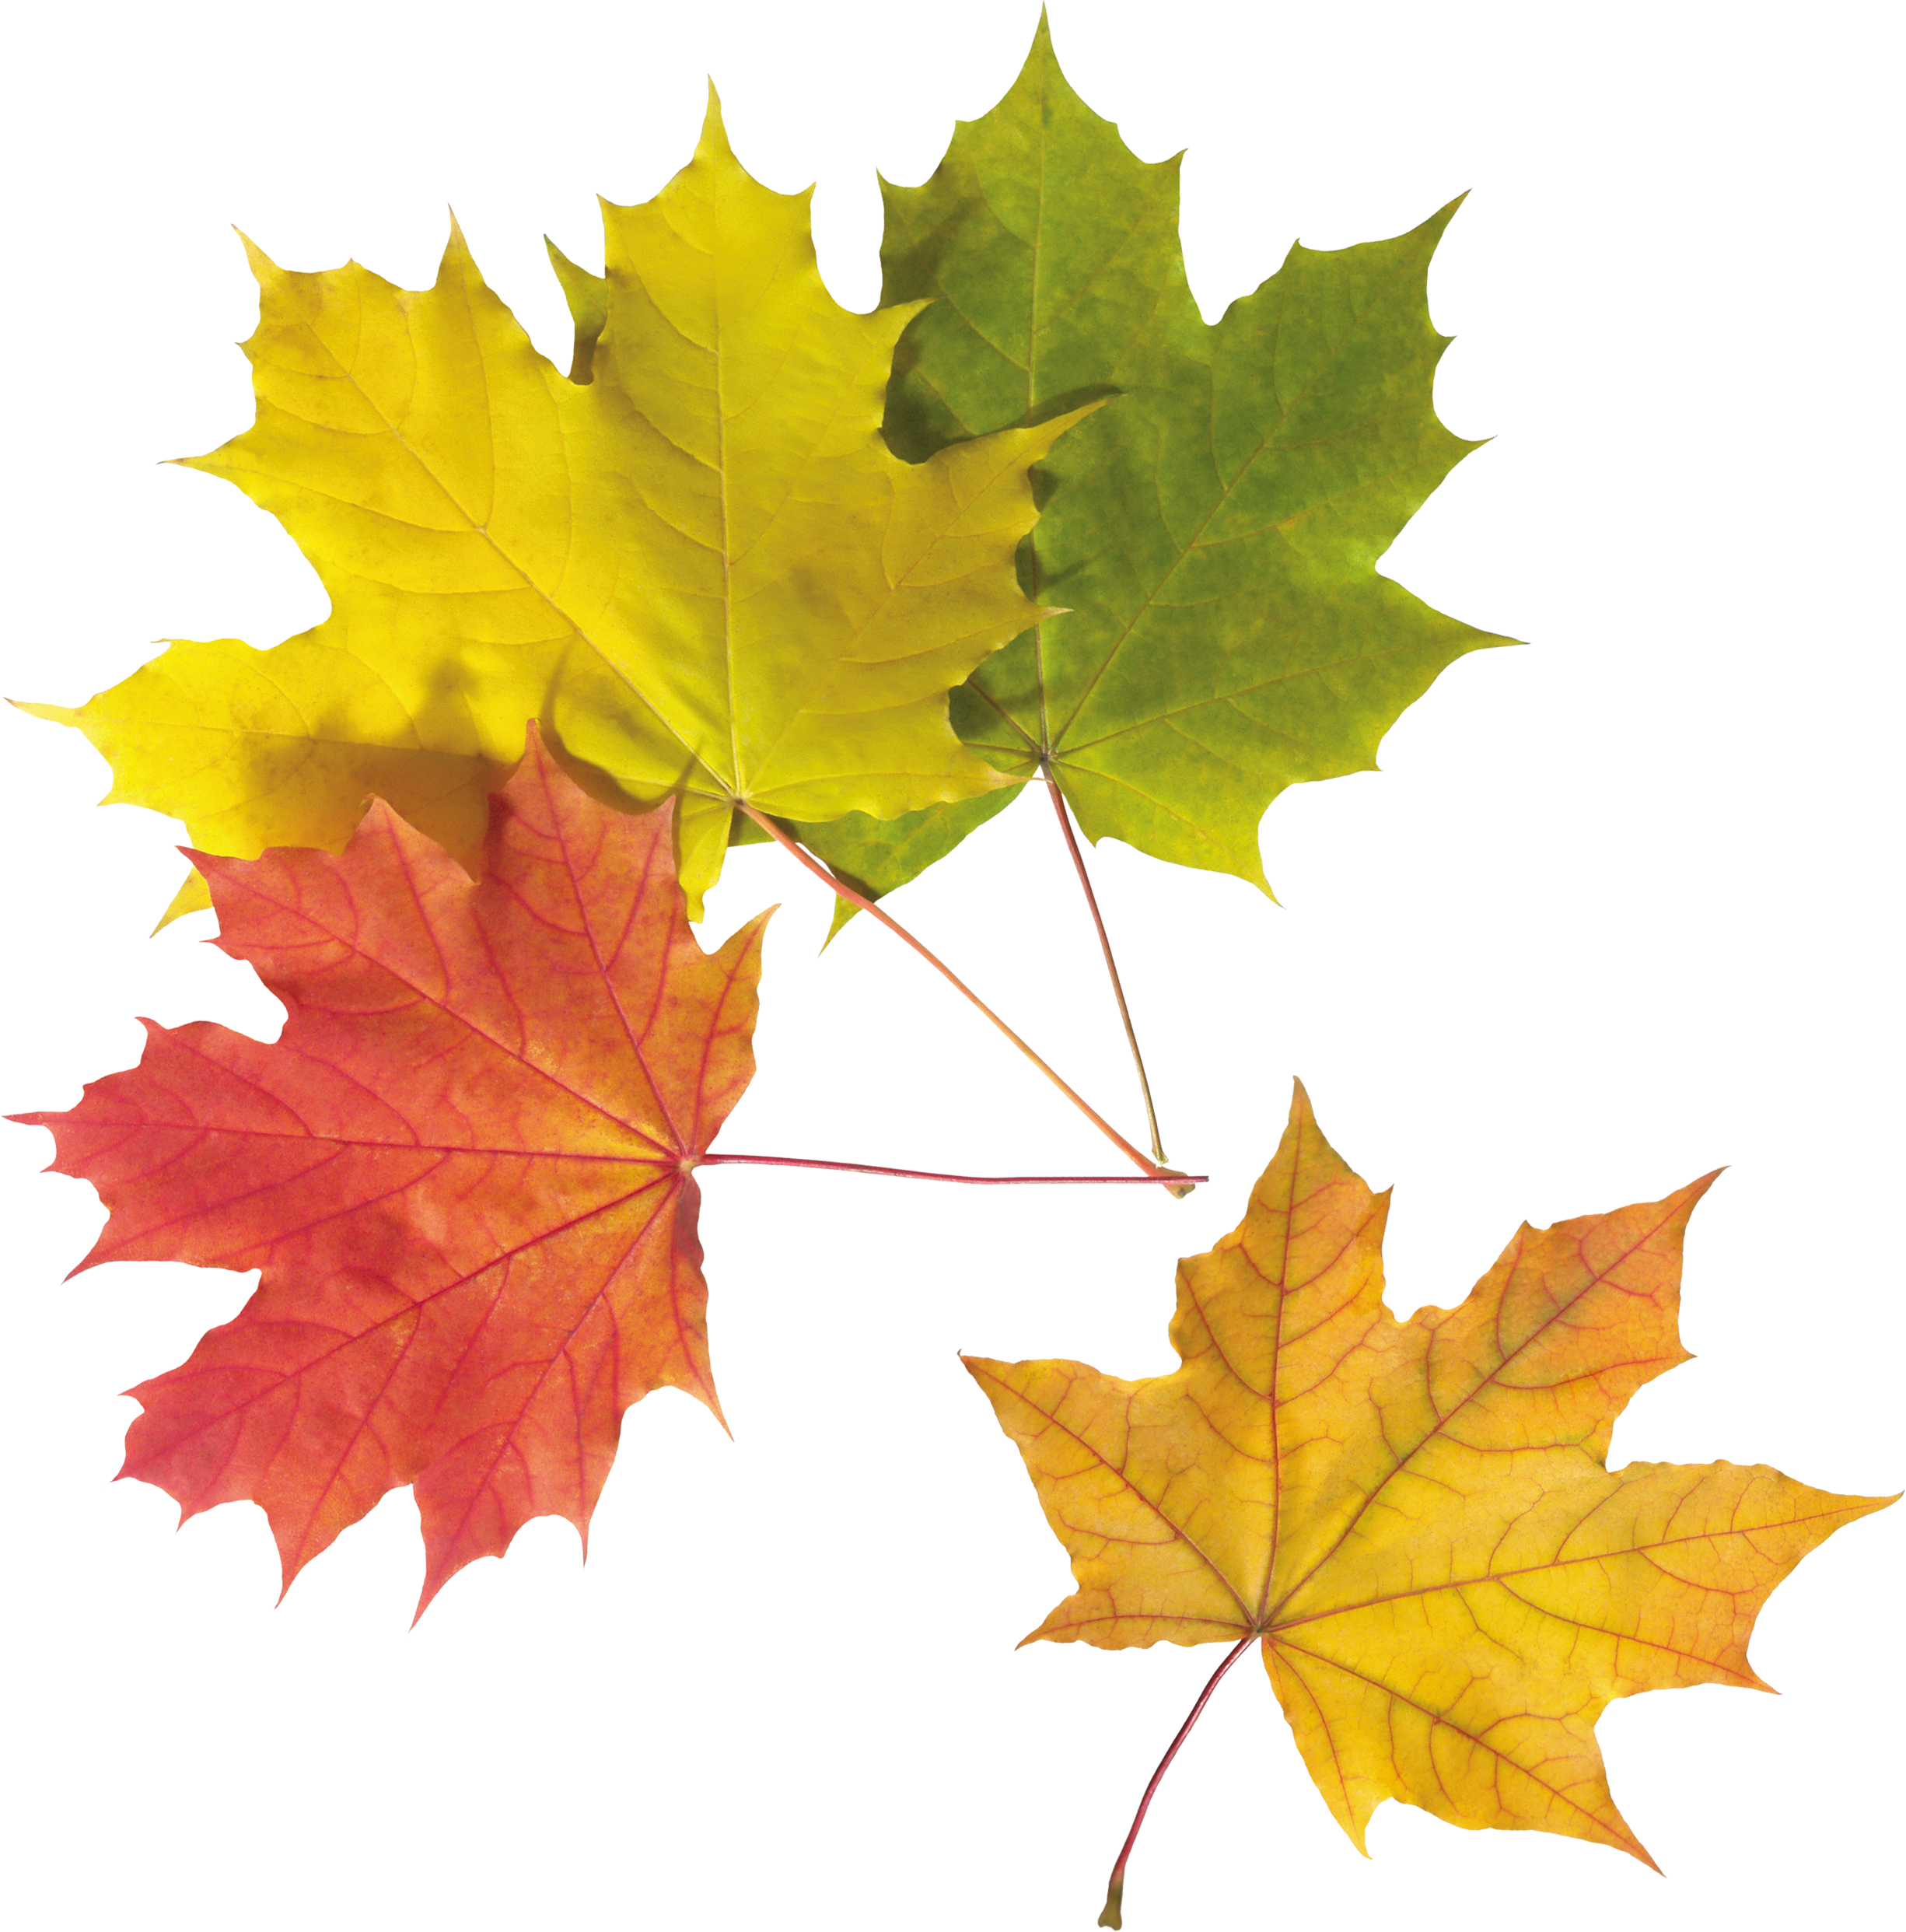 Autumn leaves images free. Leaf png picture freeuse stock